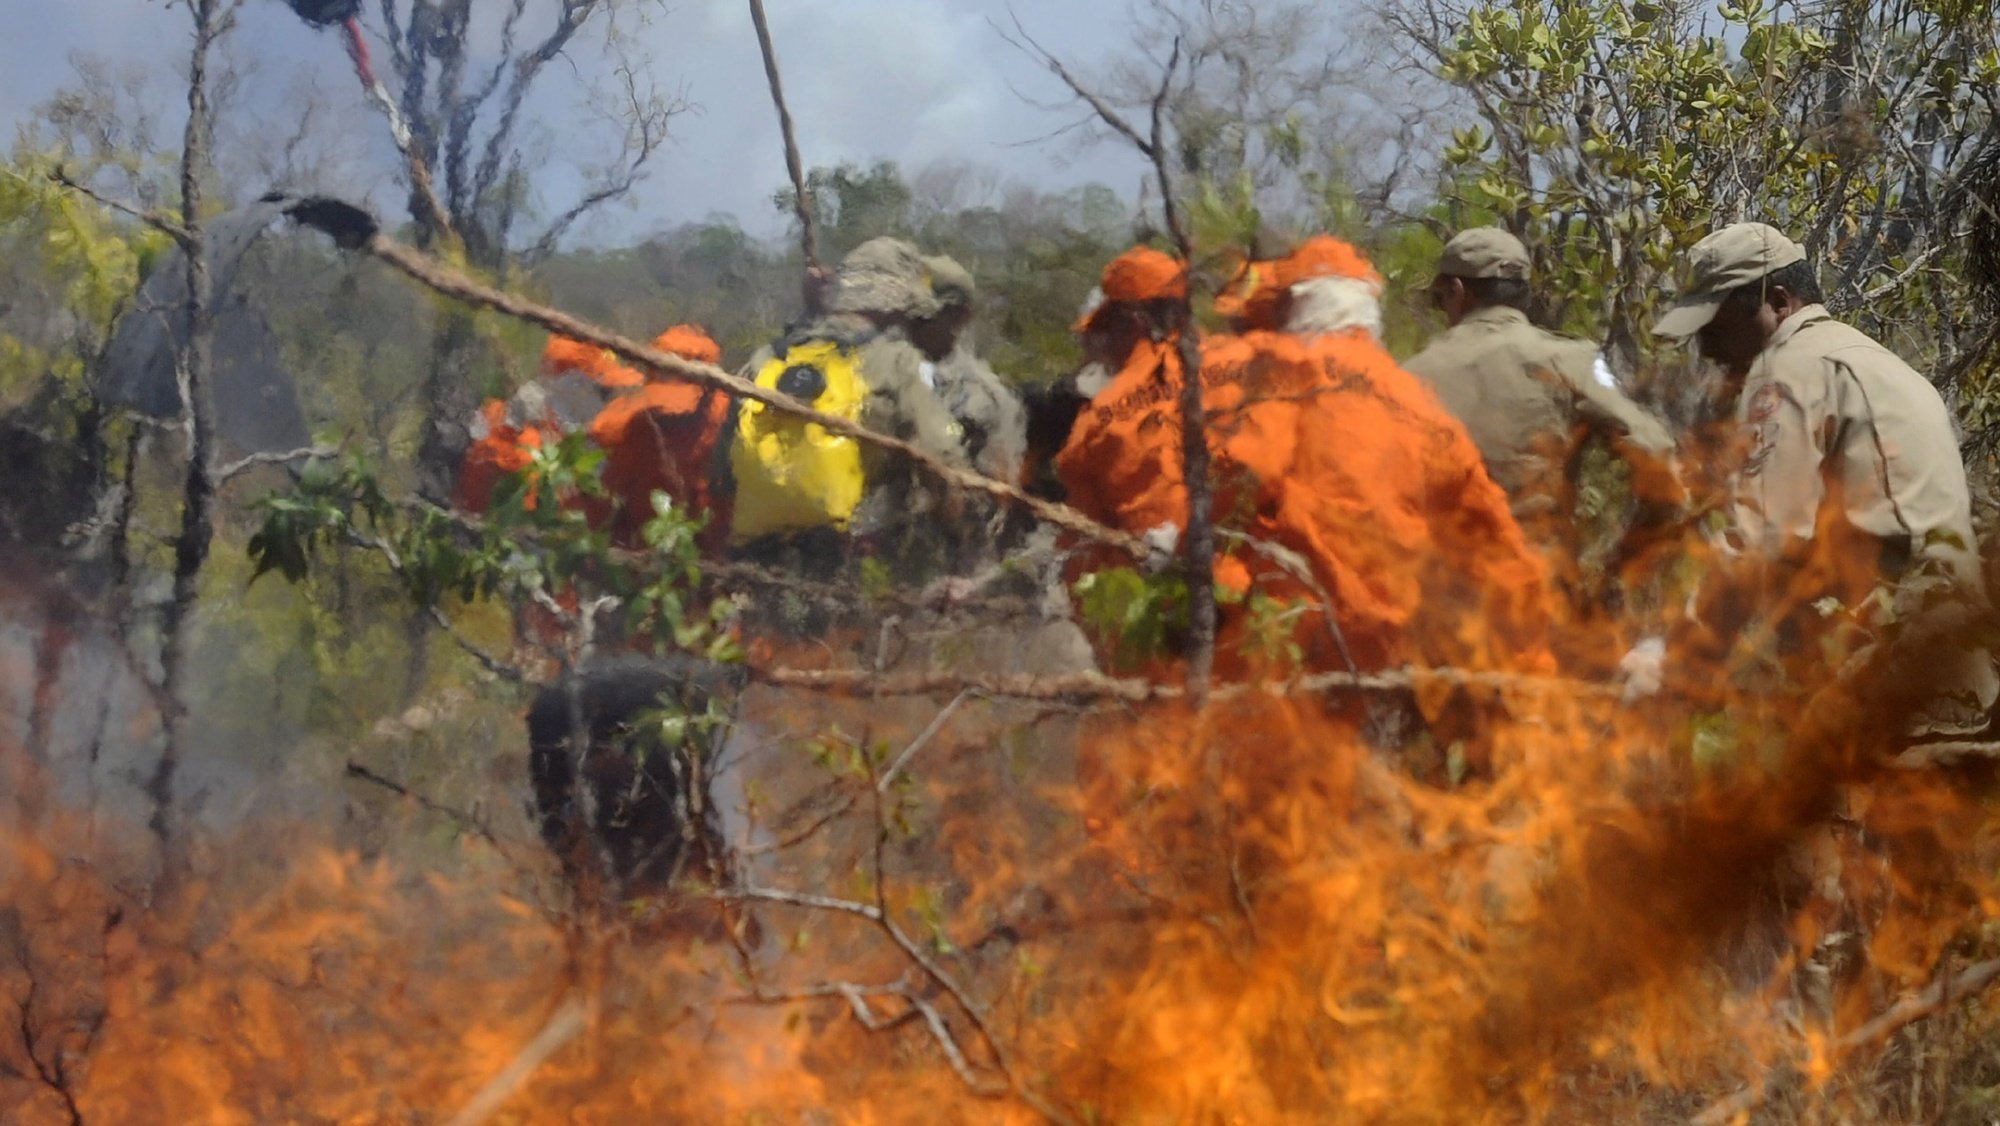 epa02346760 Firemen try to extinguish the wildfire in the National Park of Brasilia also known as 'Agua Mineral' in Brasilia, Brazil, 20 September 2010. More than 200 firemen an inhabitants of the region try to control the fire, the biggest in the last three years in Brasilia.  EPA/FERNANDO BIZERRA JR